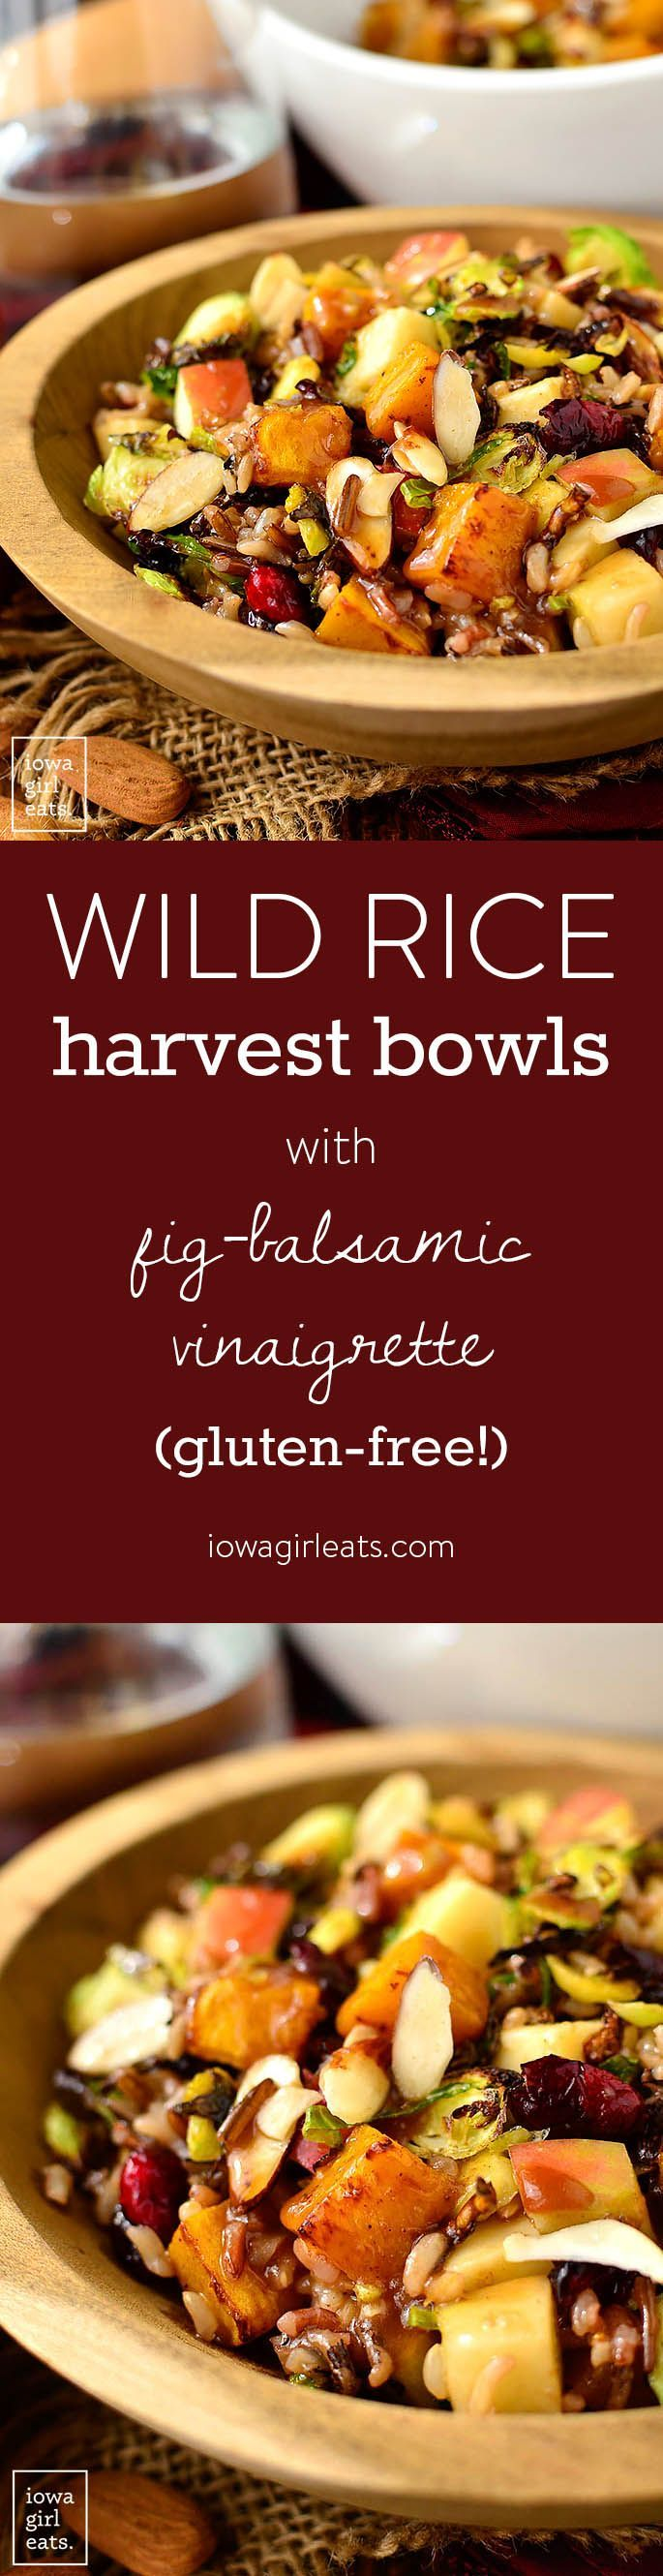 Wild Rice Harvest Bowls with Fig Balsamic Vinaigrette are full of healthy, fall-inspired ingredients. Make a big batch then enjoy for lunch all week long! | iowagirleats.com